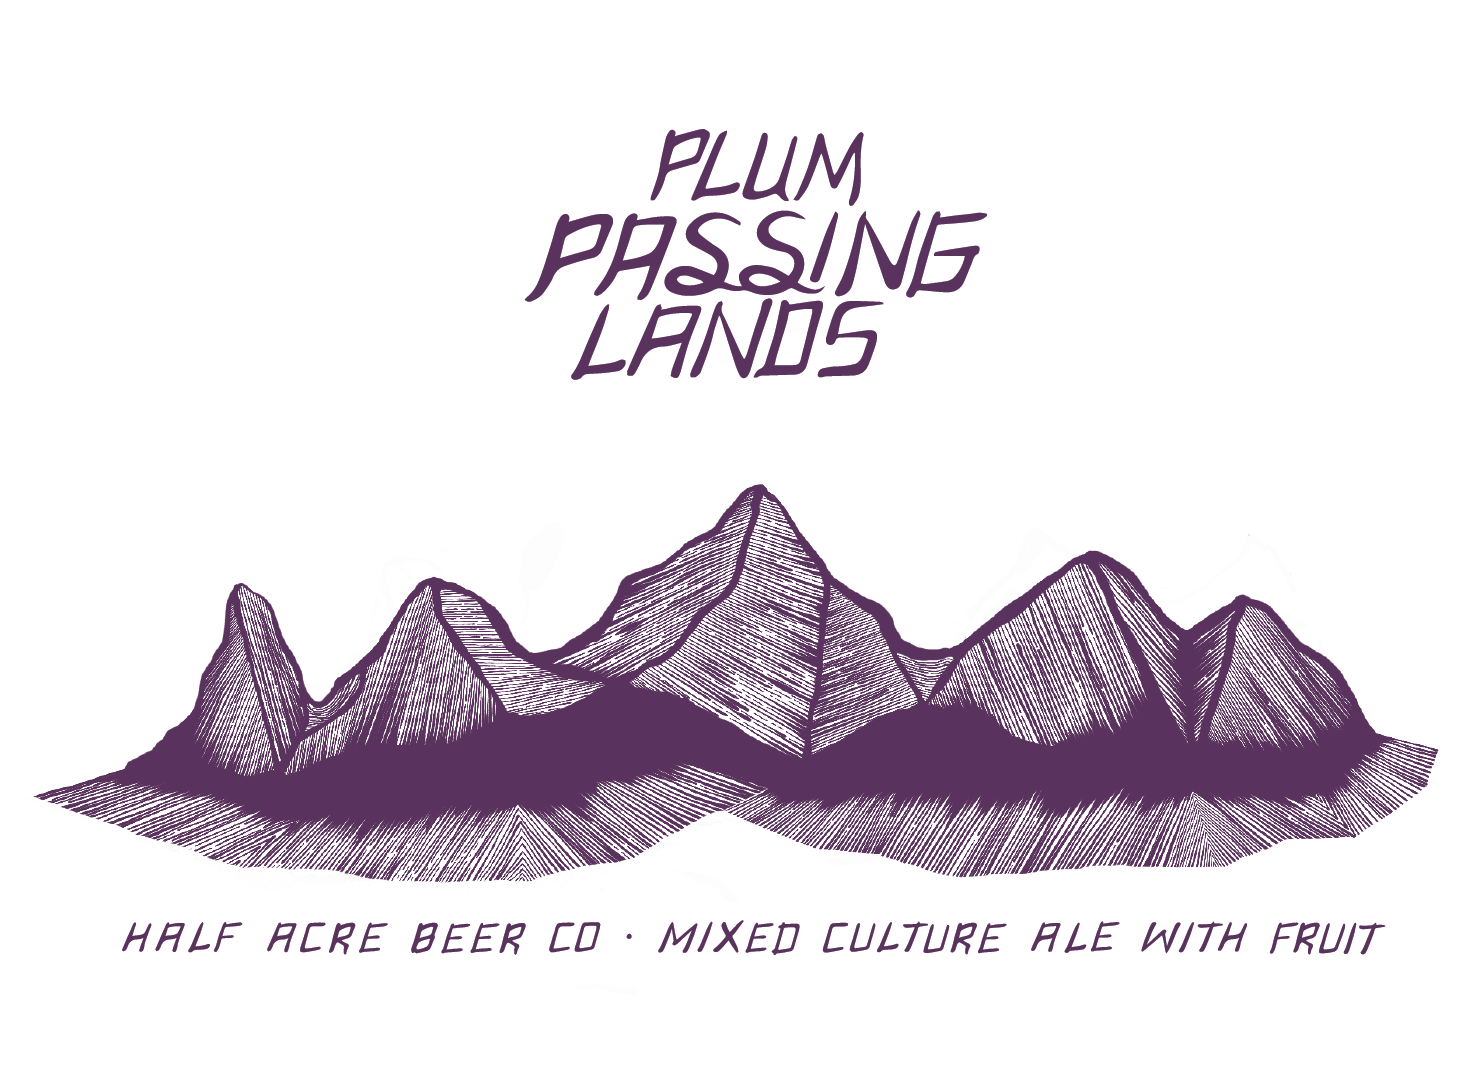 Plum_Passing_Lands_web-01.png